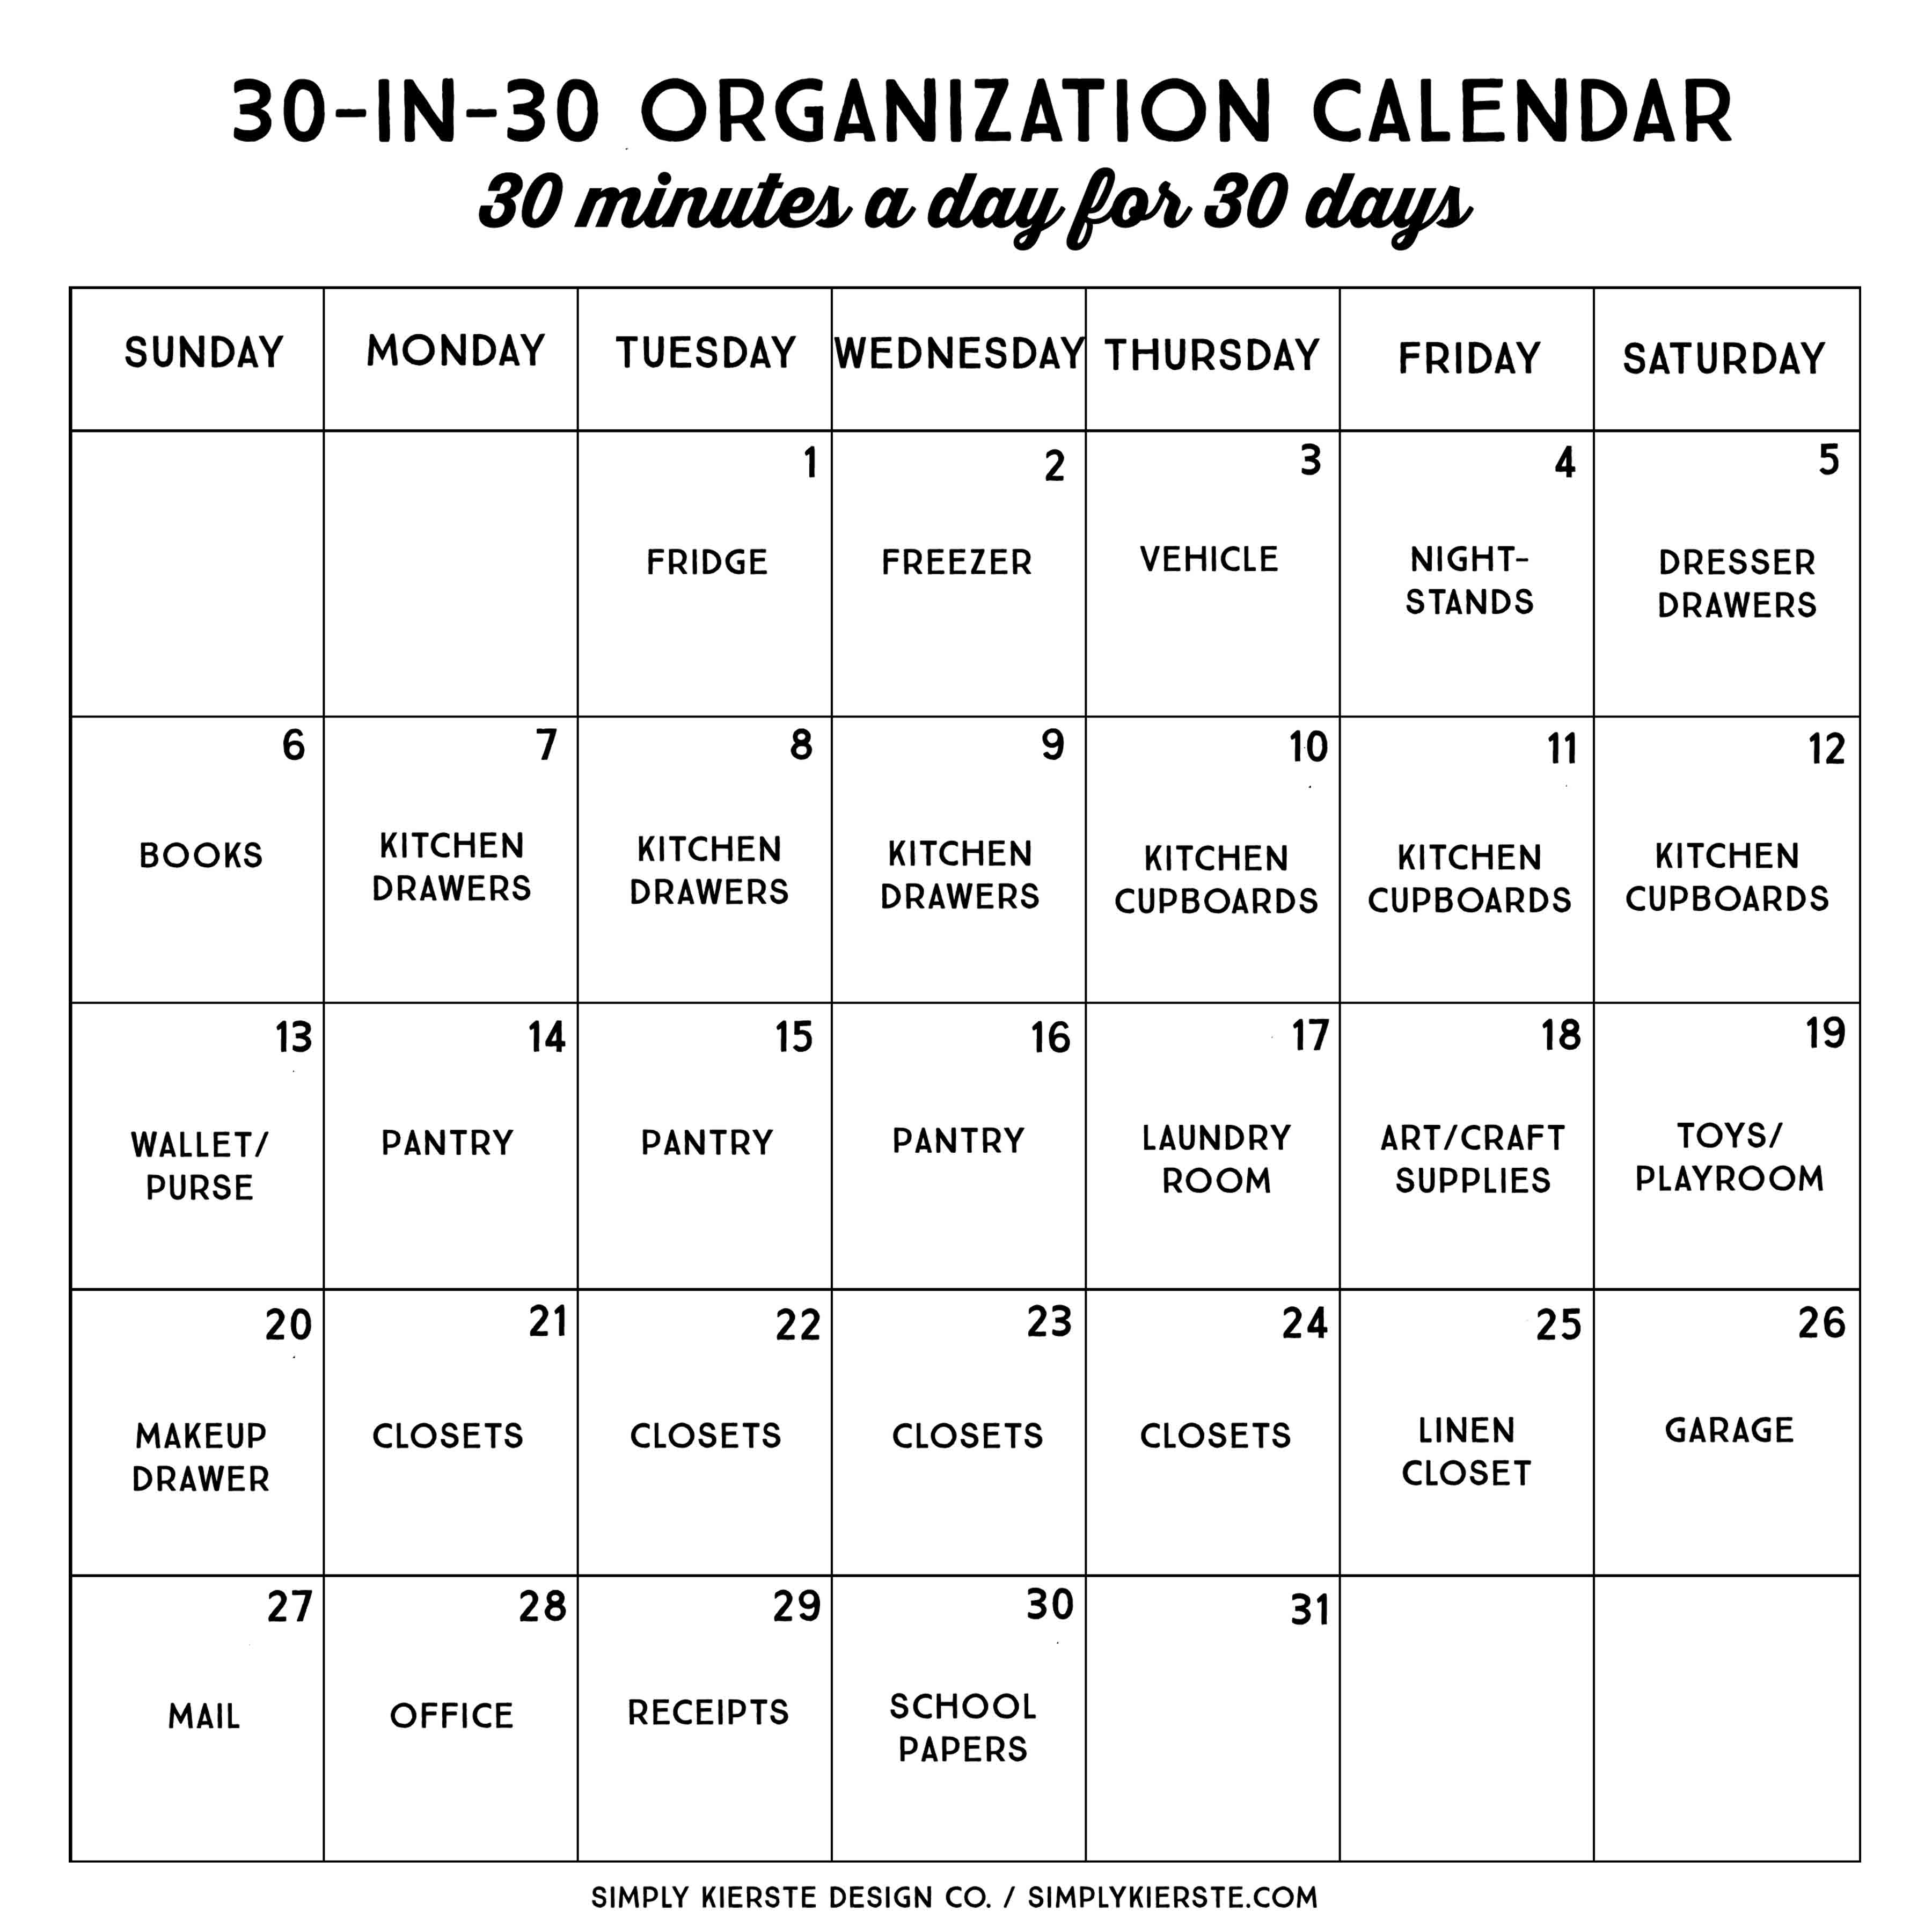 30 Minute, 30 Day Organization Calendar | Simply Kierste throughout 30 Day Calendar